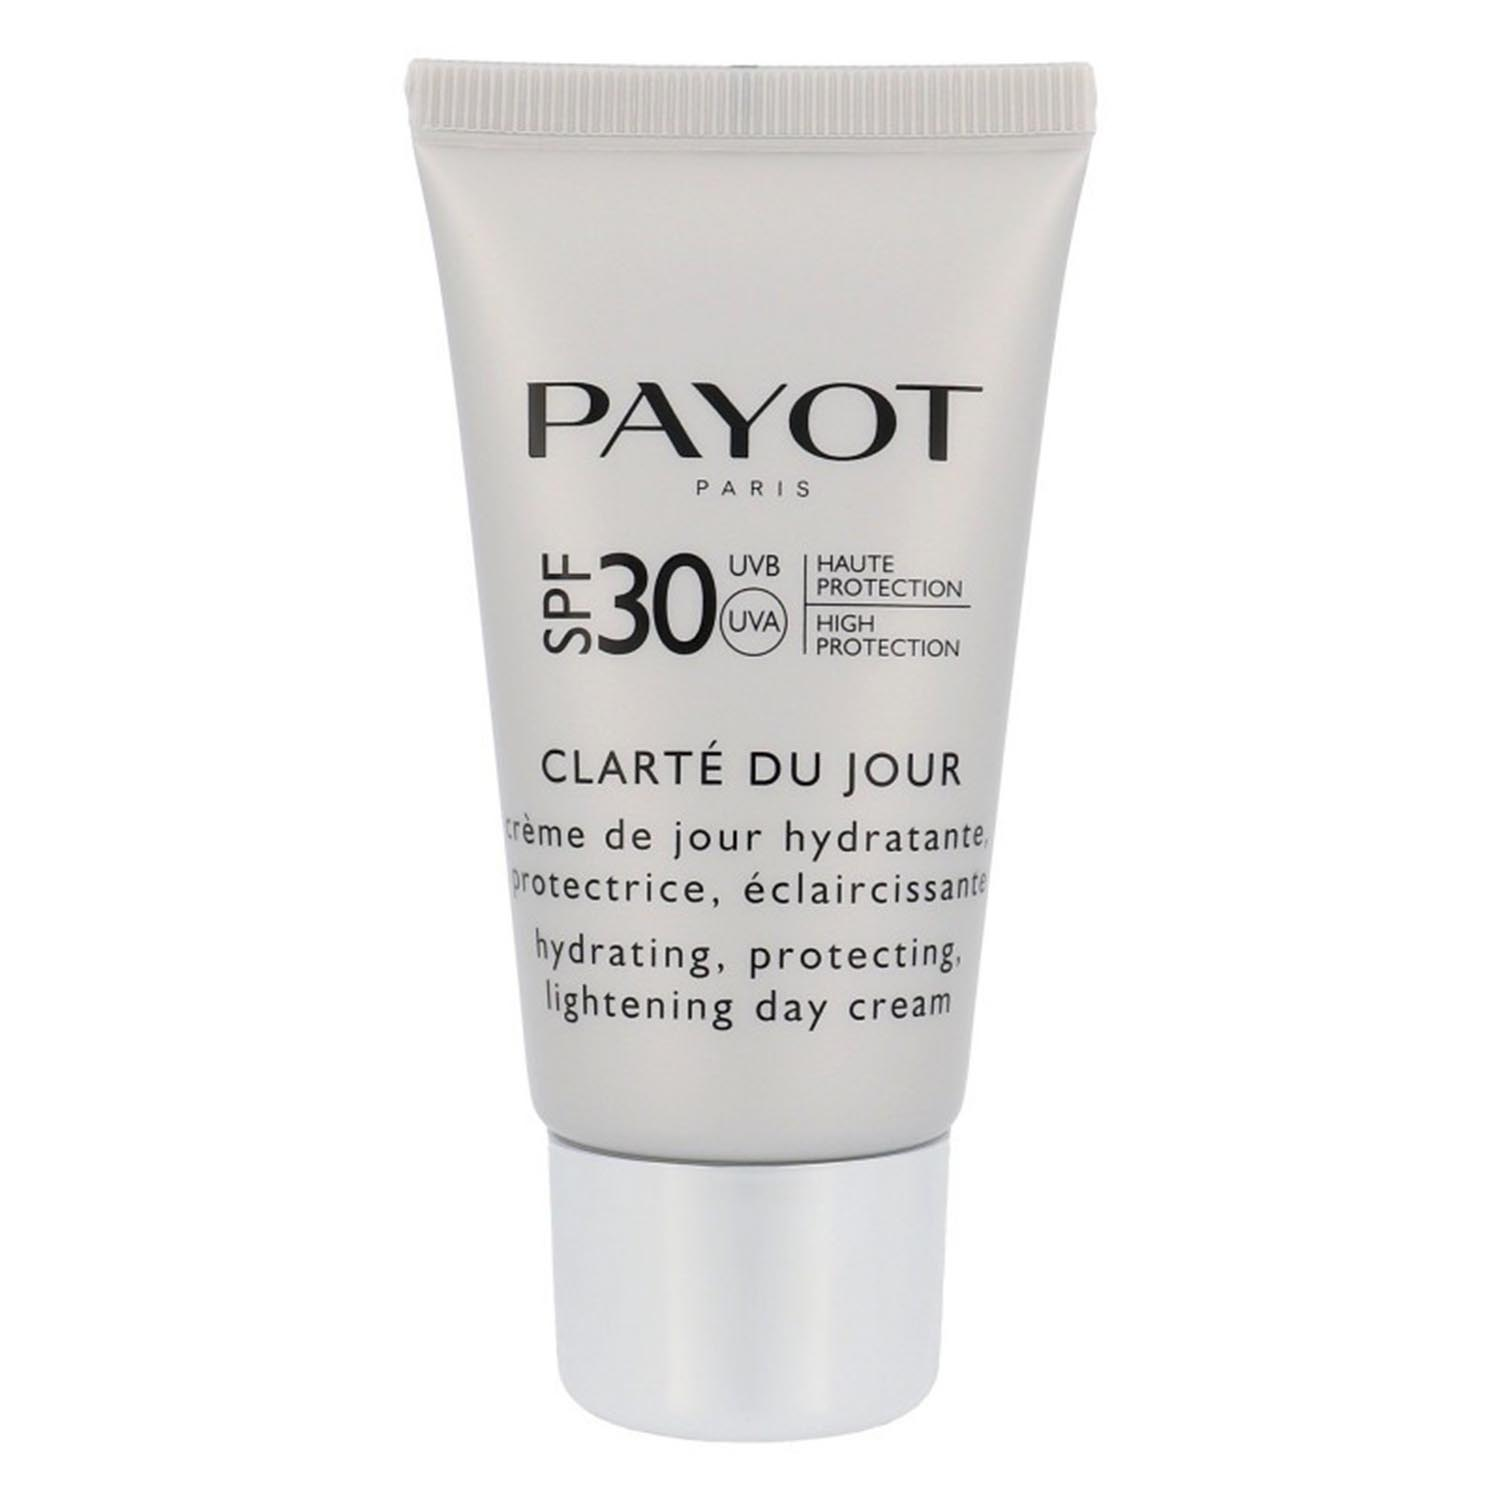 Payot absolute pure white spf30 clarte du jour 50ml